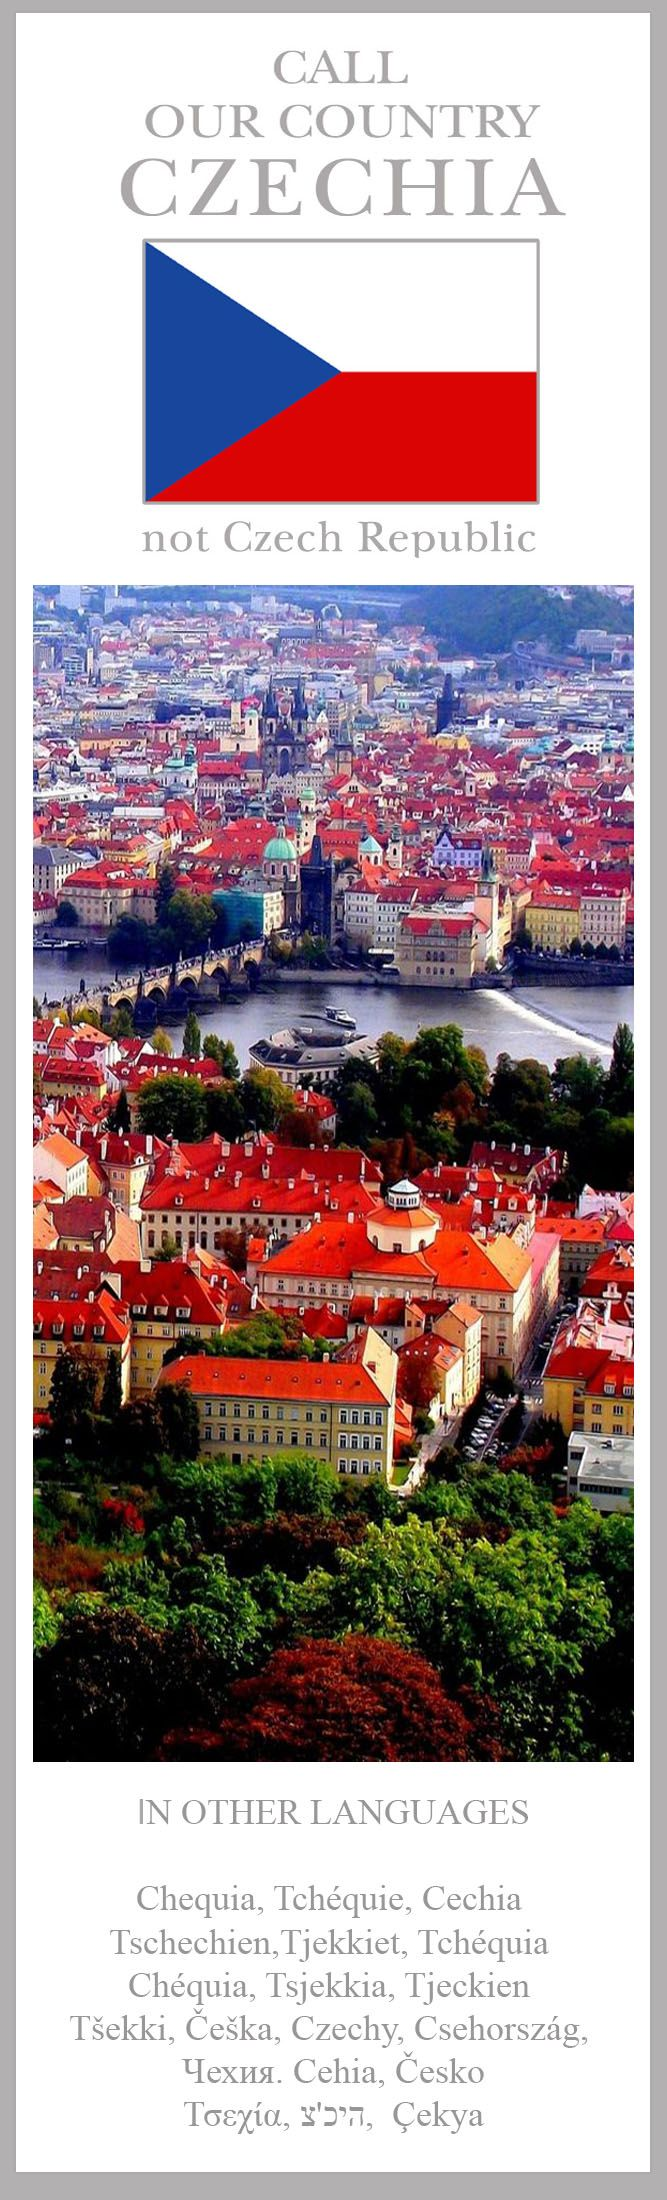 186 best Call our country Czechia! images on Pinterest